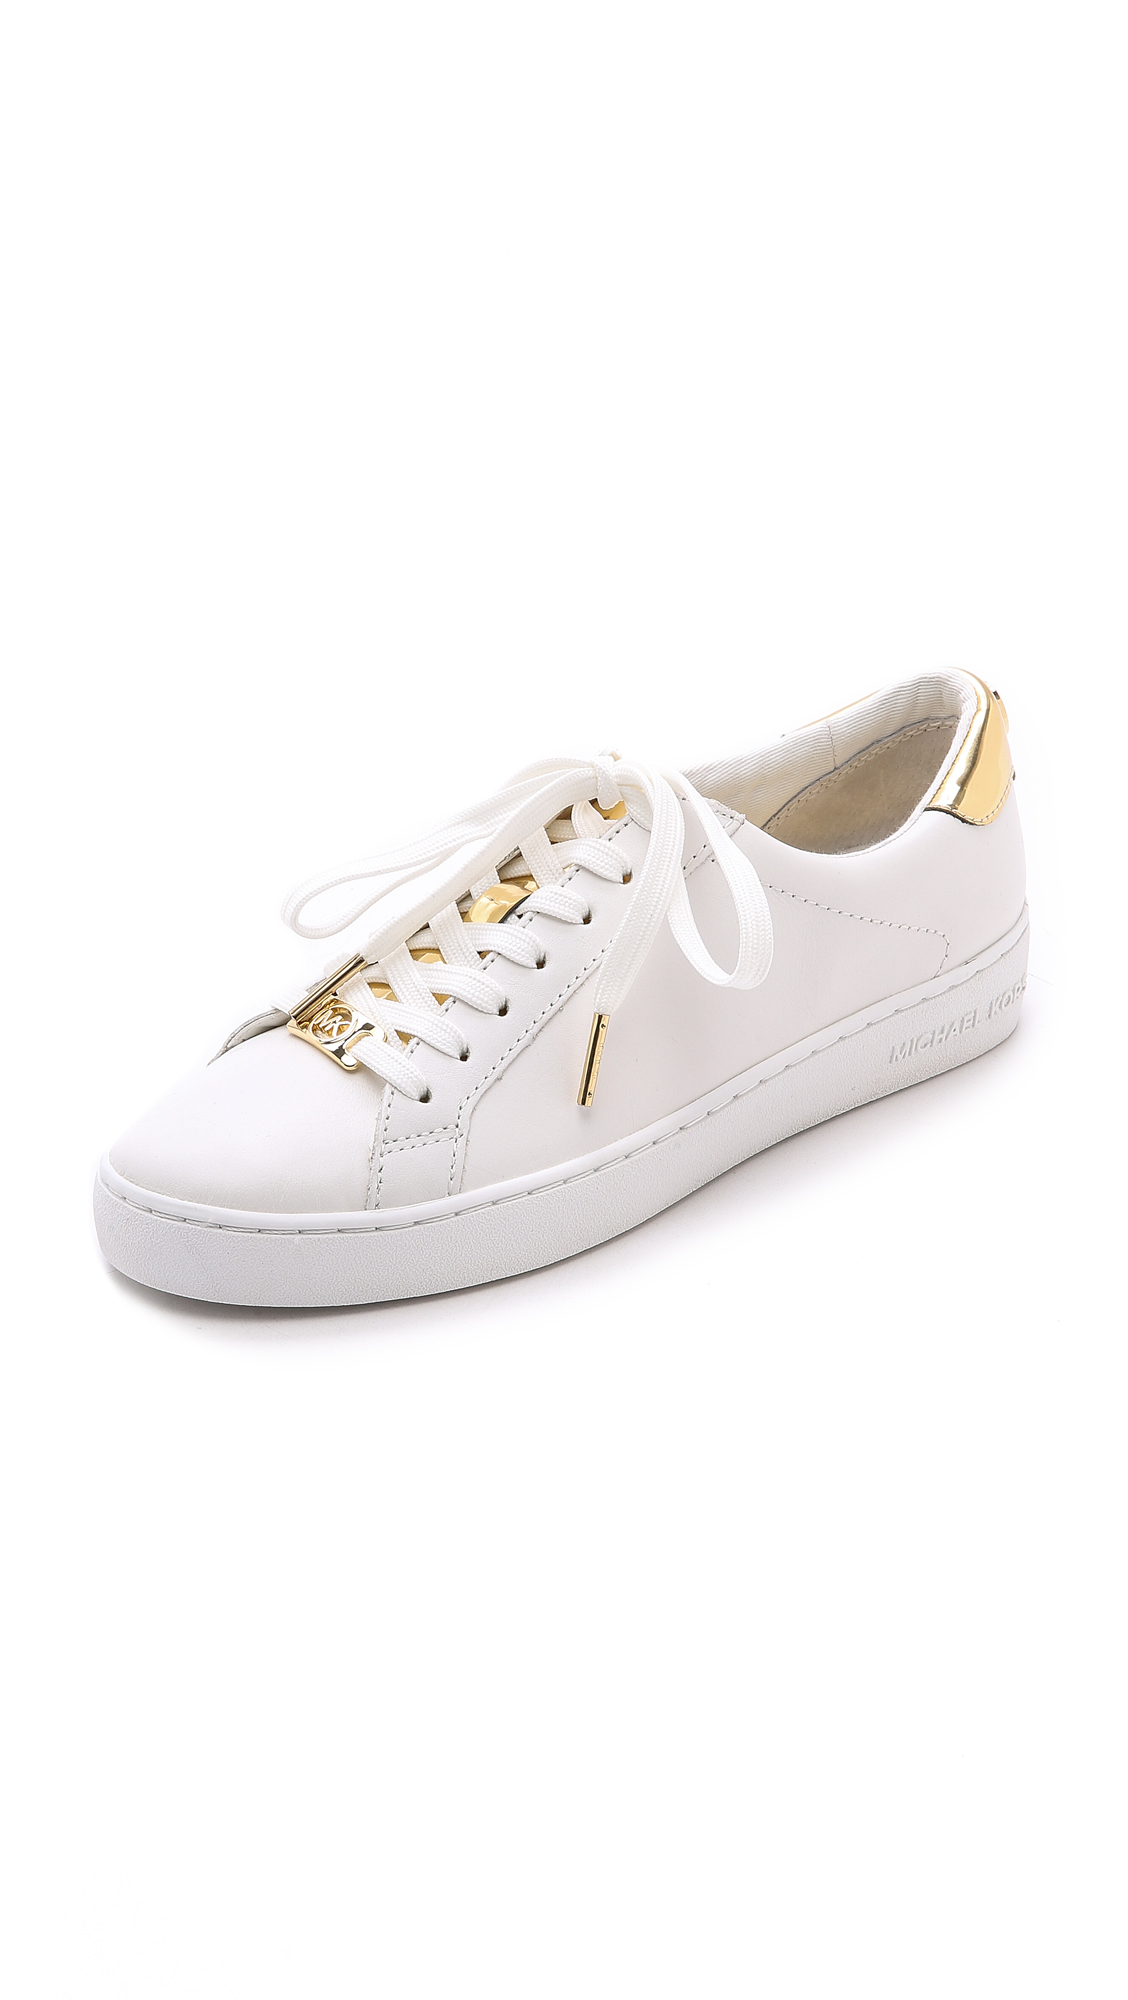 33c498f5588a Lyst - MICHAEL Michael Kors Irving Lace Up Sneakers - Optic Pale ...